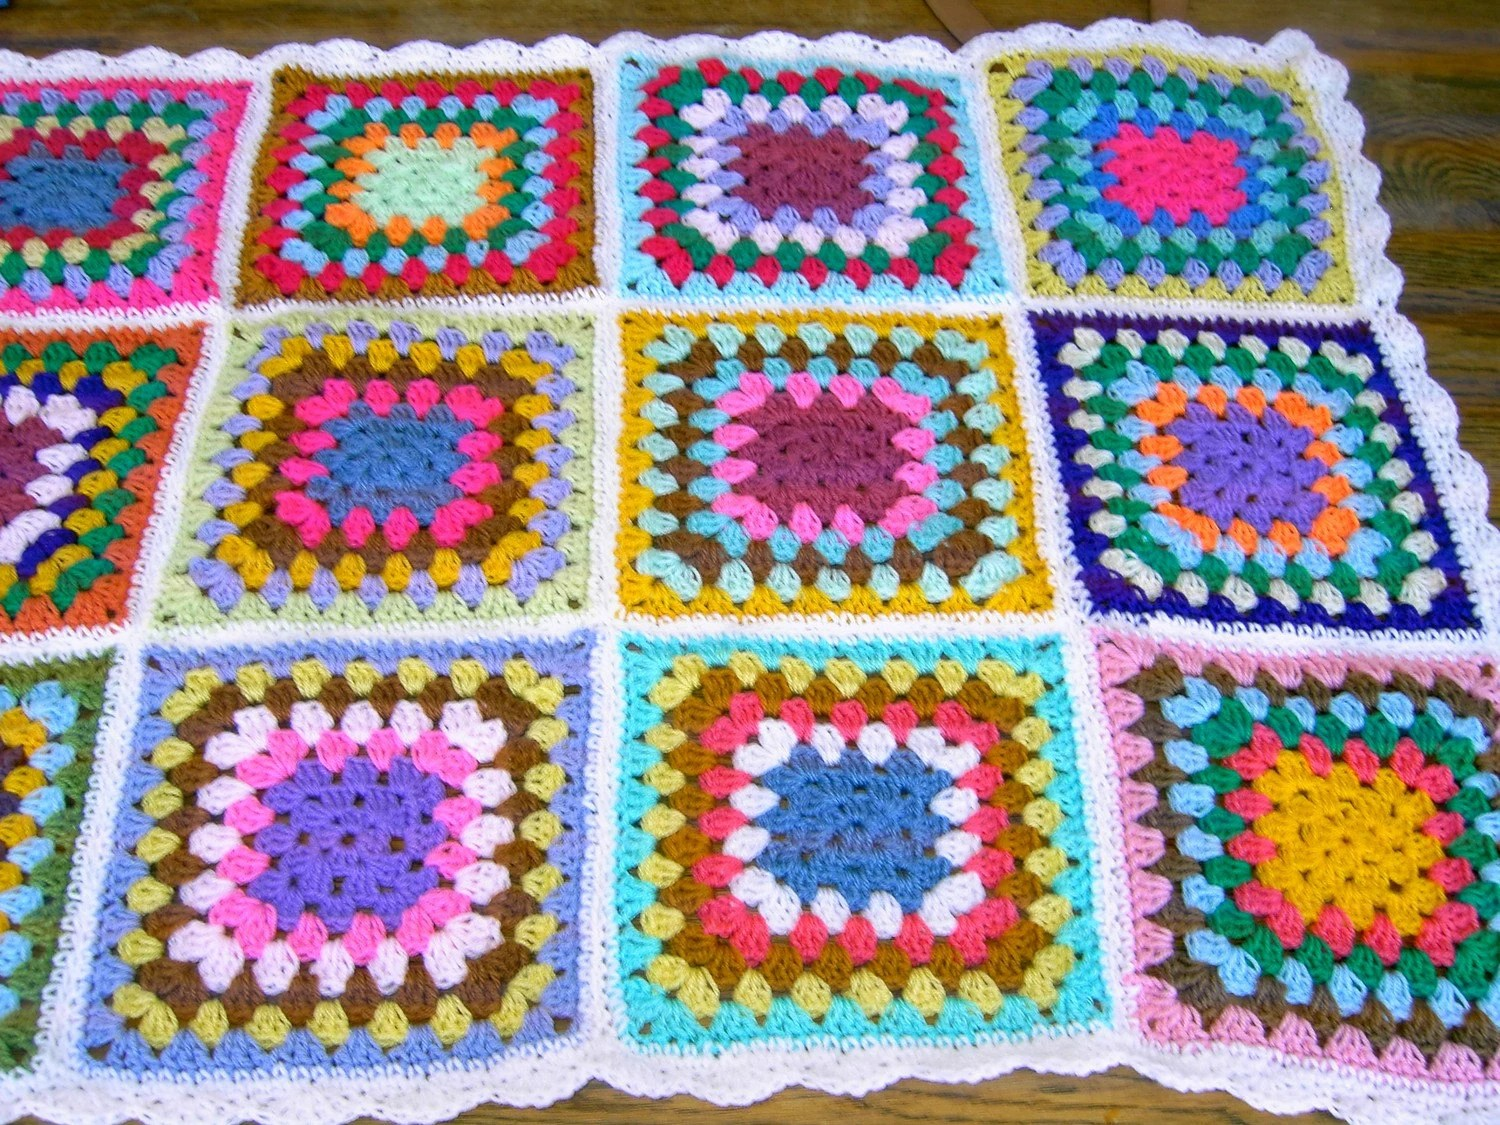 Handmade crochet blanket -  Made in tradition granny multi colour style with white border CUDDLE BLANKET ( nannycheryl original )  669